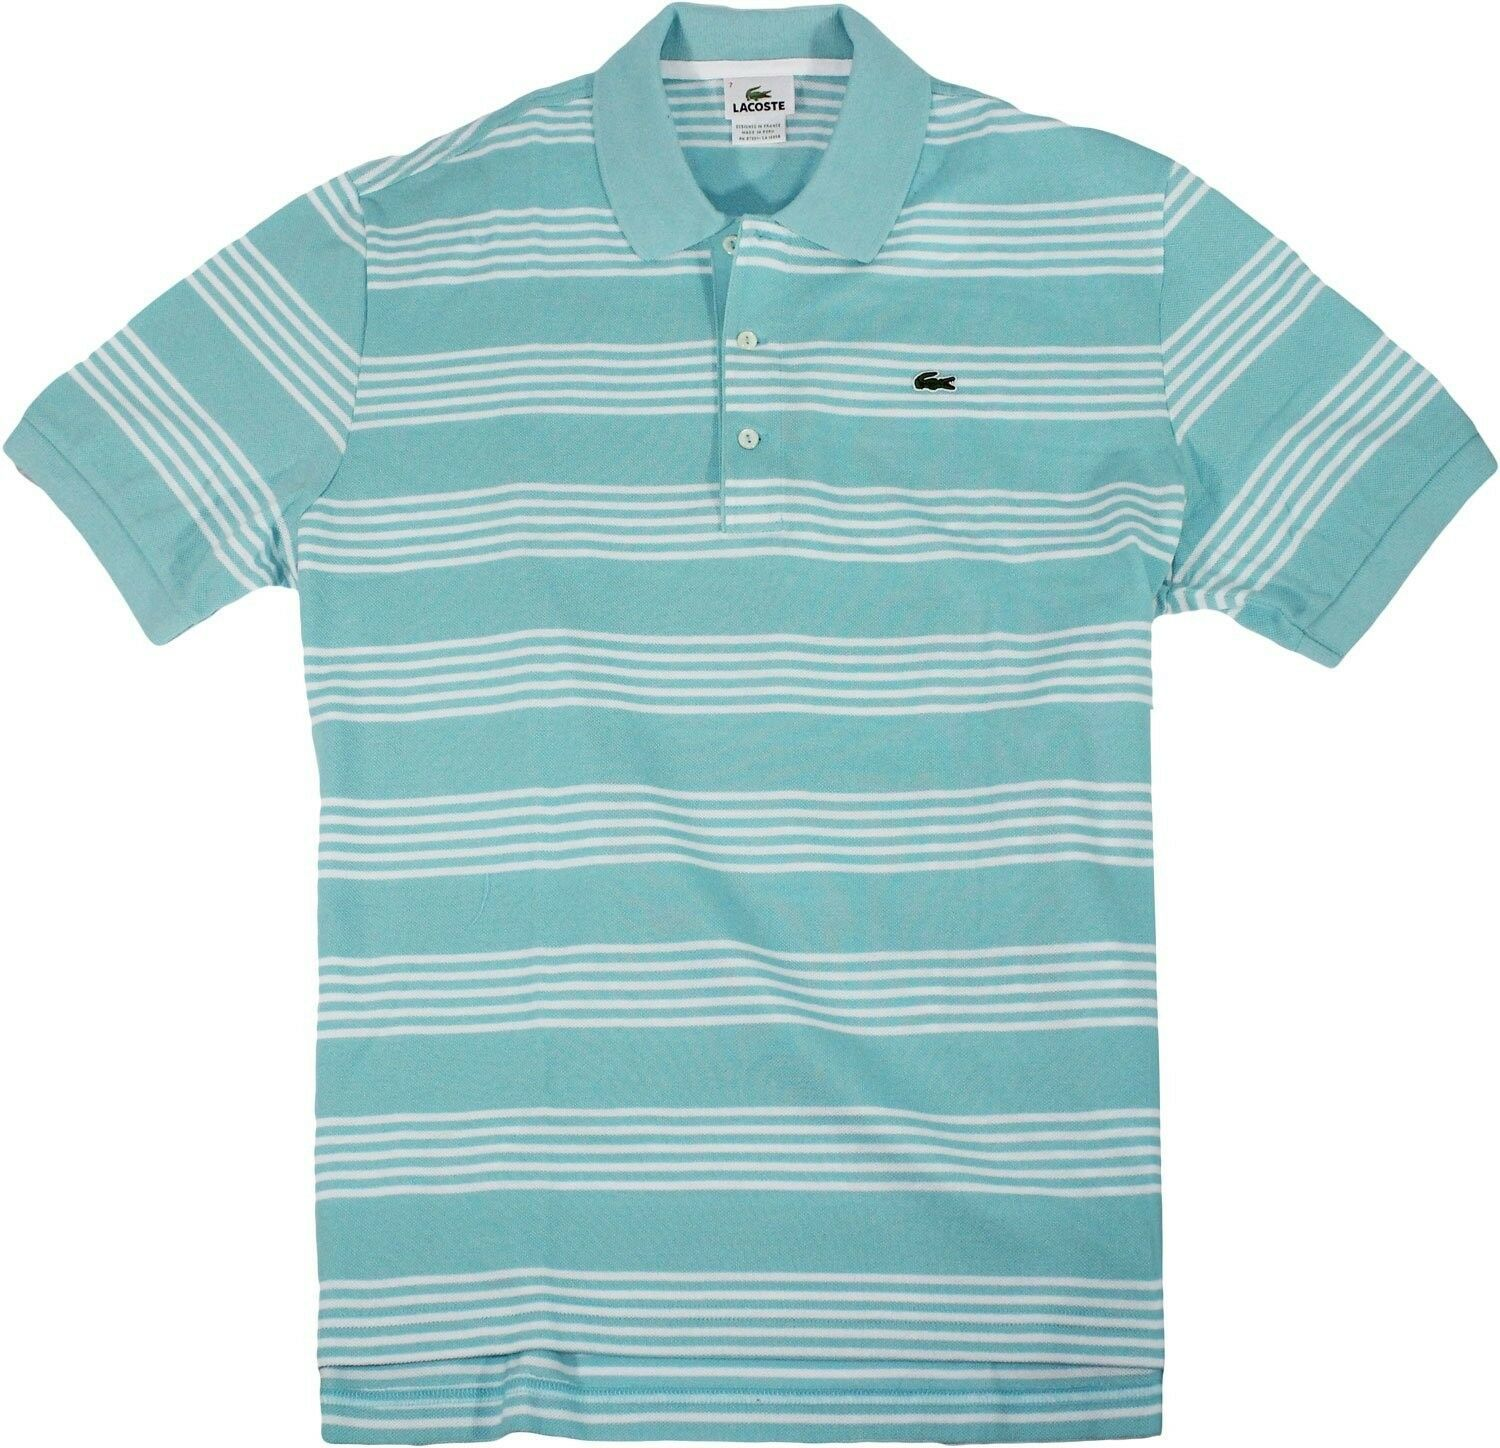 NEW NWT LACOSTE MEN'S PREMIUM SPORT ATHLETIC COTTON POLO SHIRT T-SHIRT AQUA